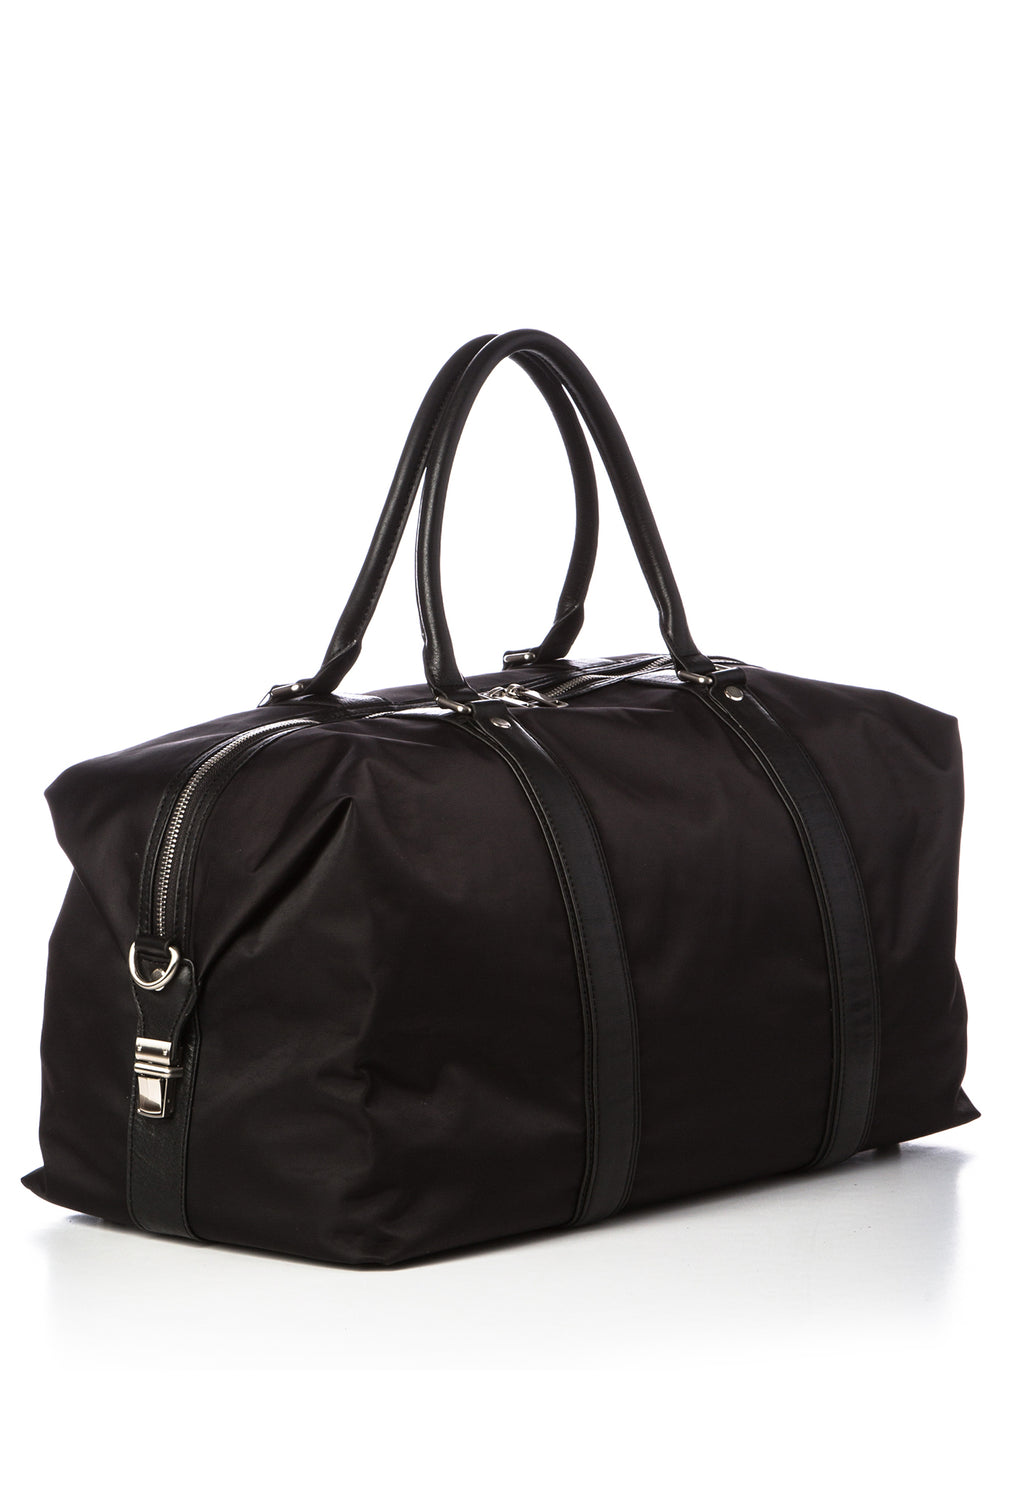 ORLANDO - Nylon/Leather Duffel - Black